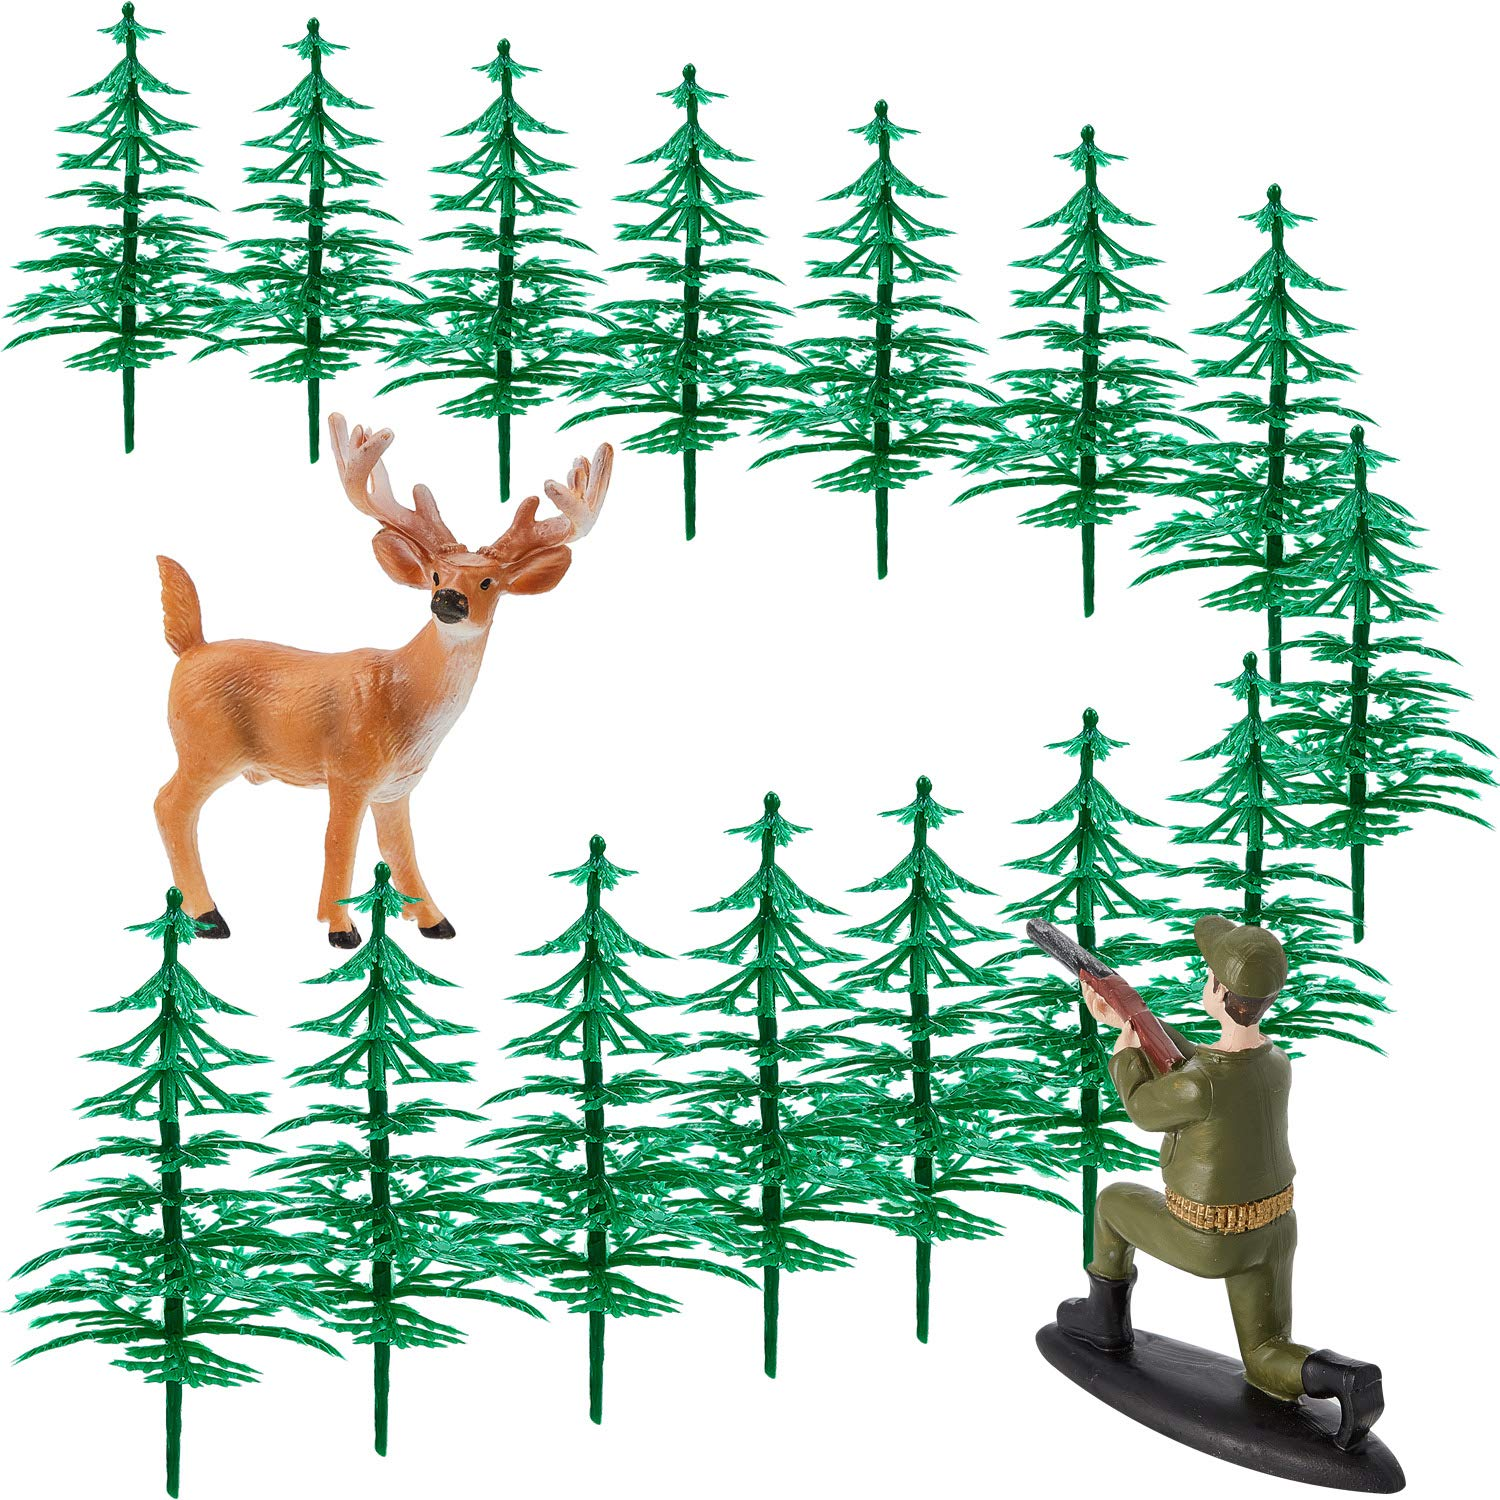 17 Pieces Deer Figurines Cake Topper Tree Cake Decorations Deer Hunting Theme Cake Topper for Birthday Hunting Party Supplies